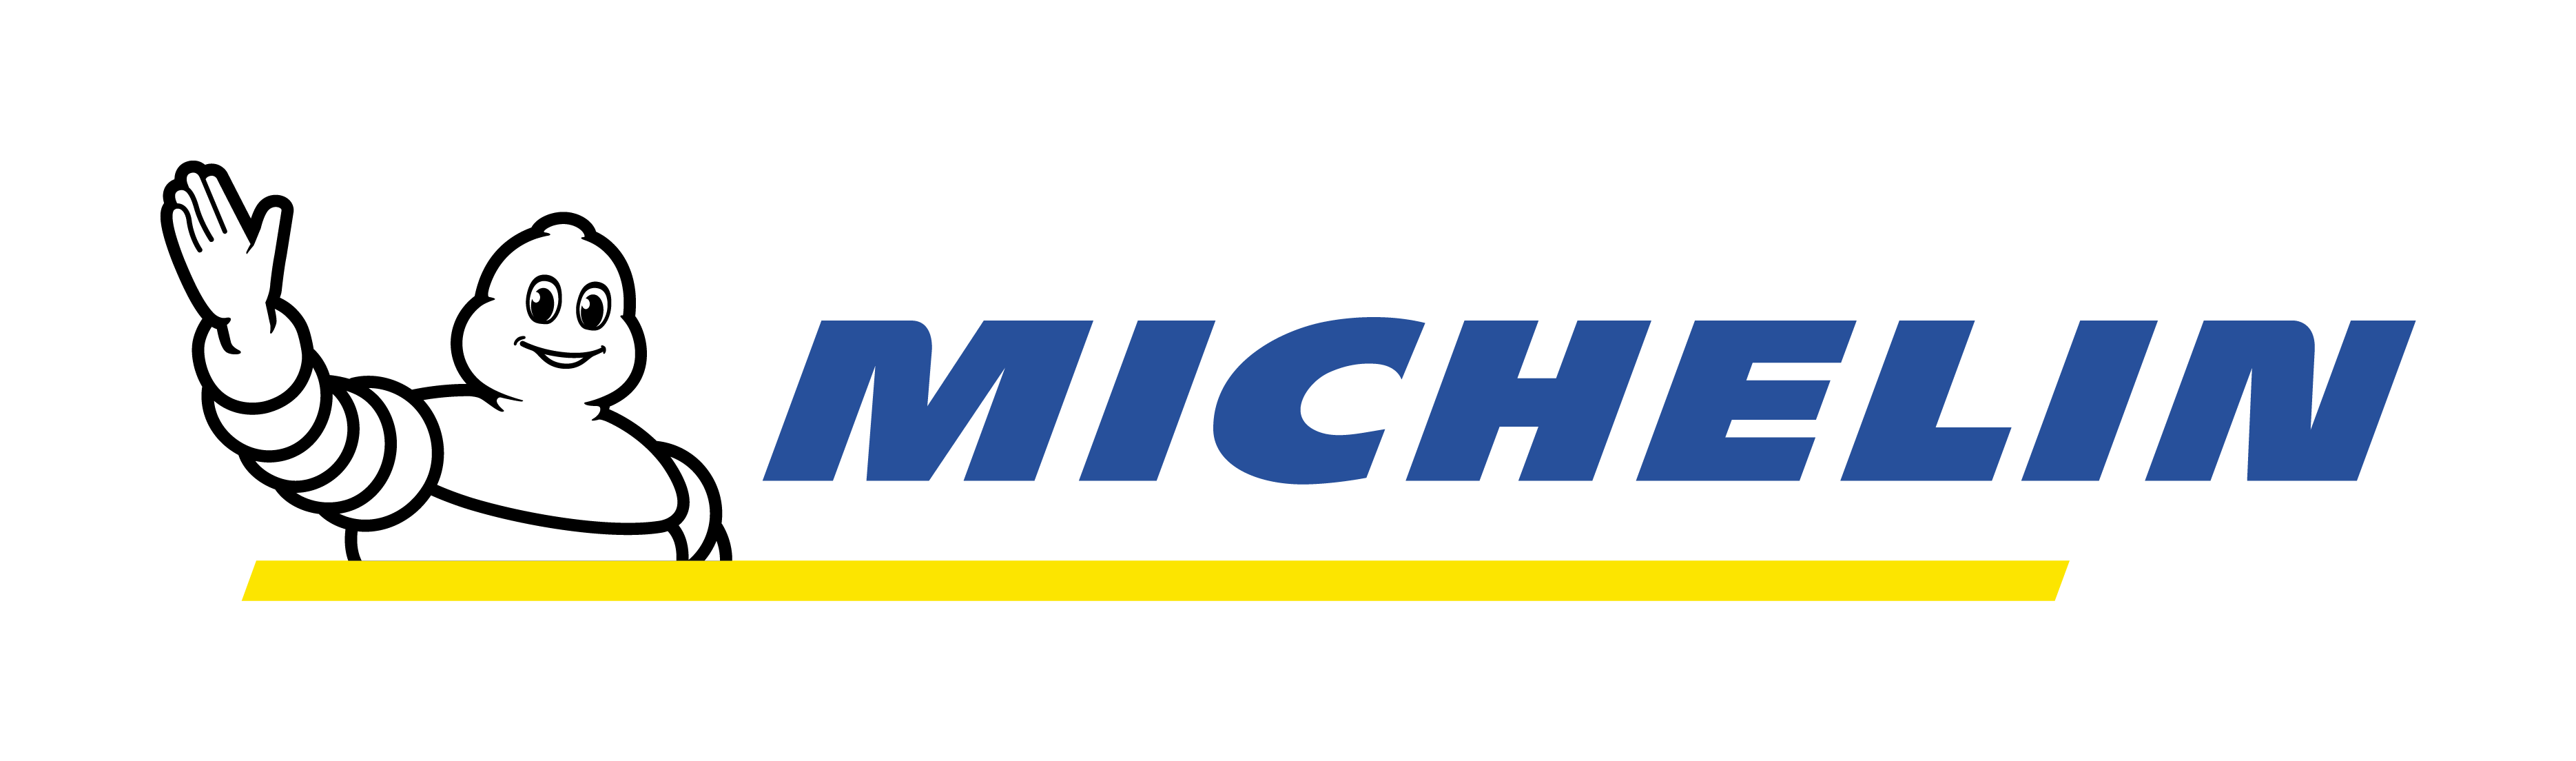 Michelin Tires Logo Vector PNG - 110769